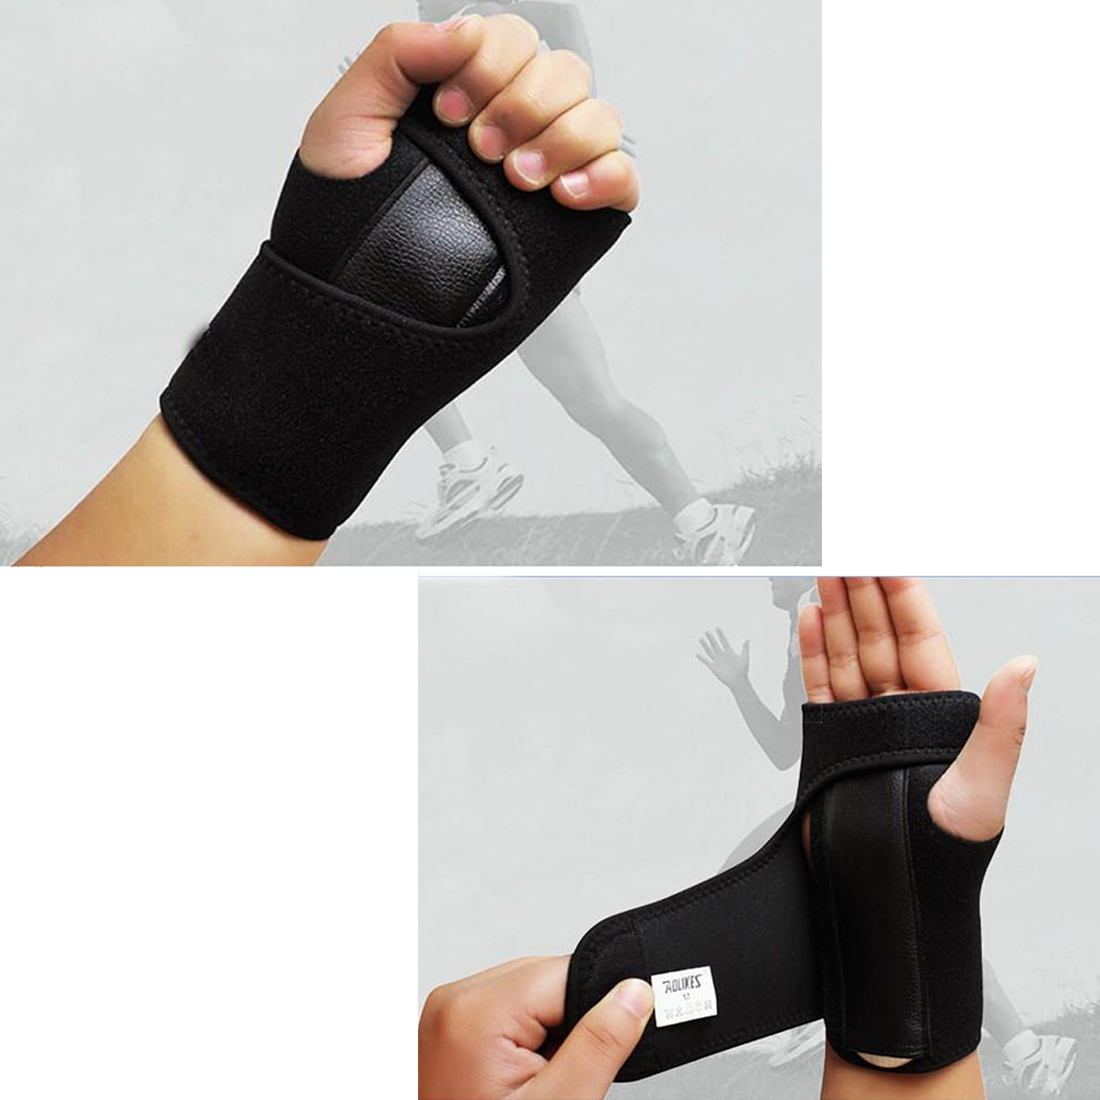 Wristband New Bandage Orthopedic Hand Brace Wrist Support Finger Splint Carpal Tunnel Syndrome